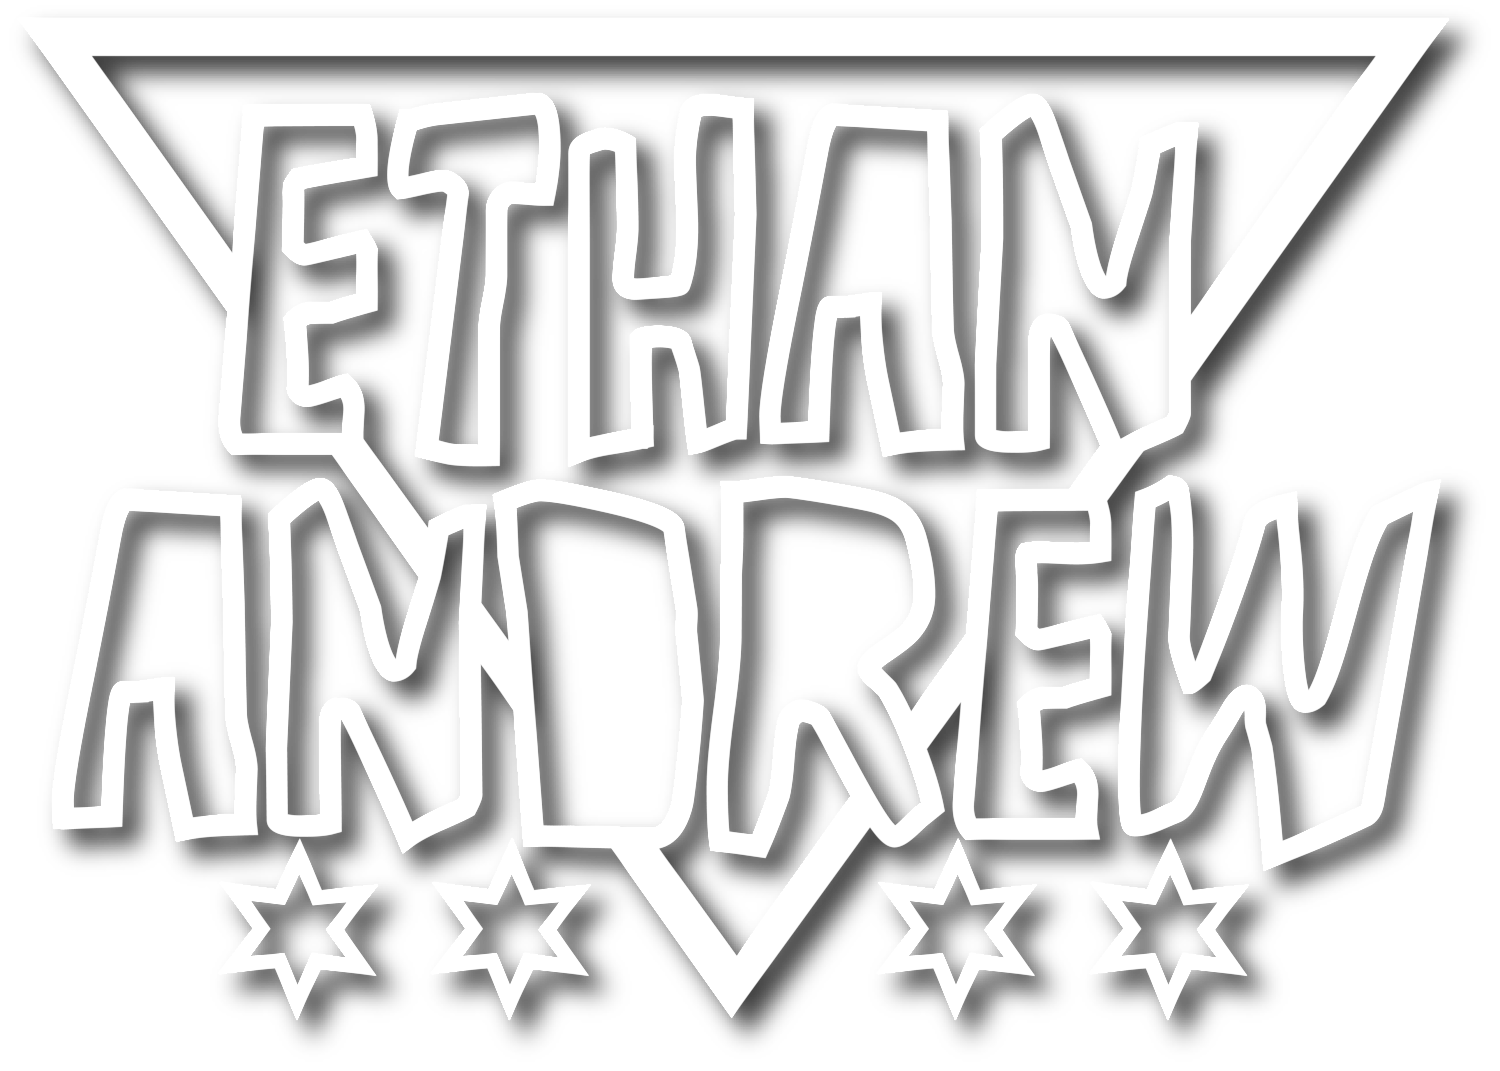 Djethanandrew.com